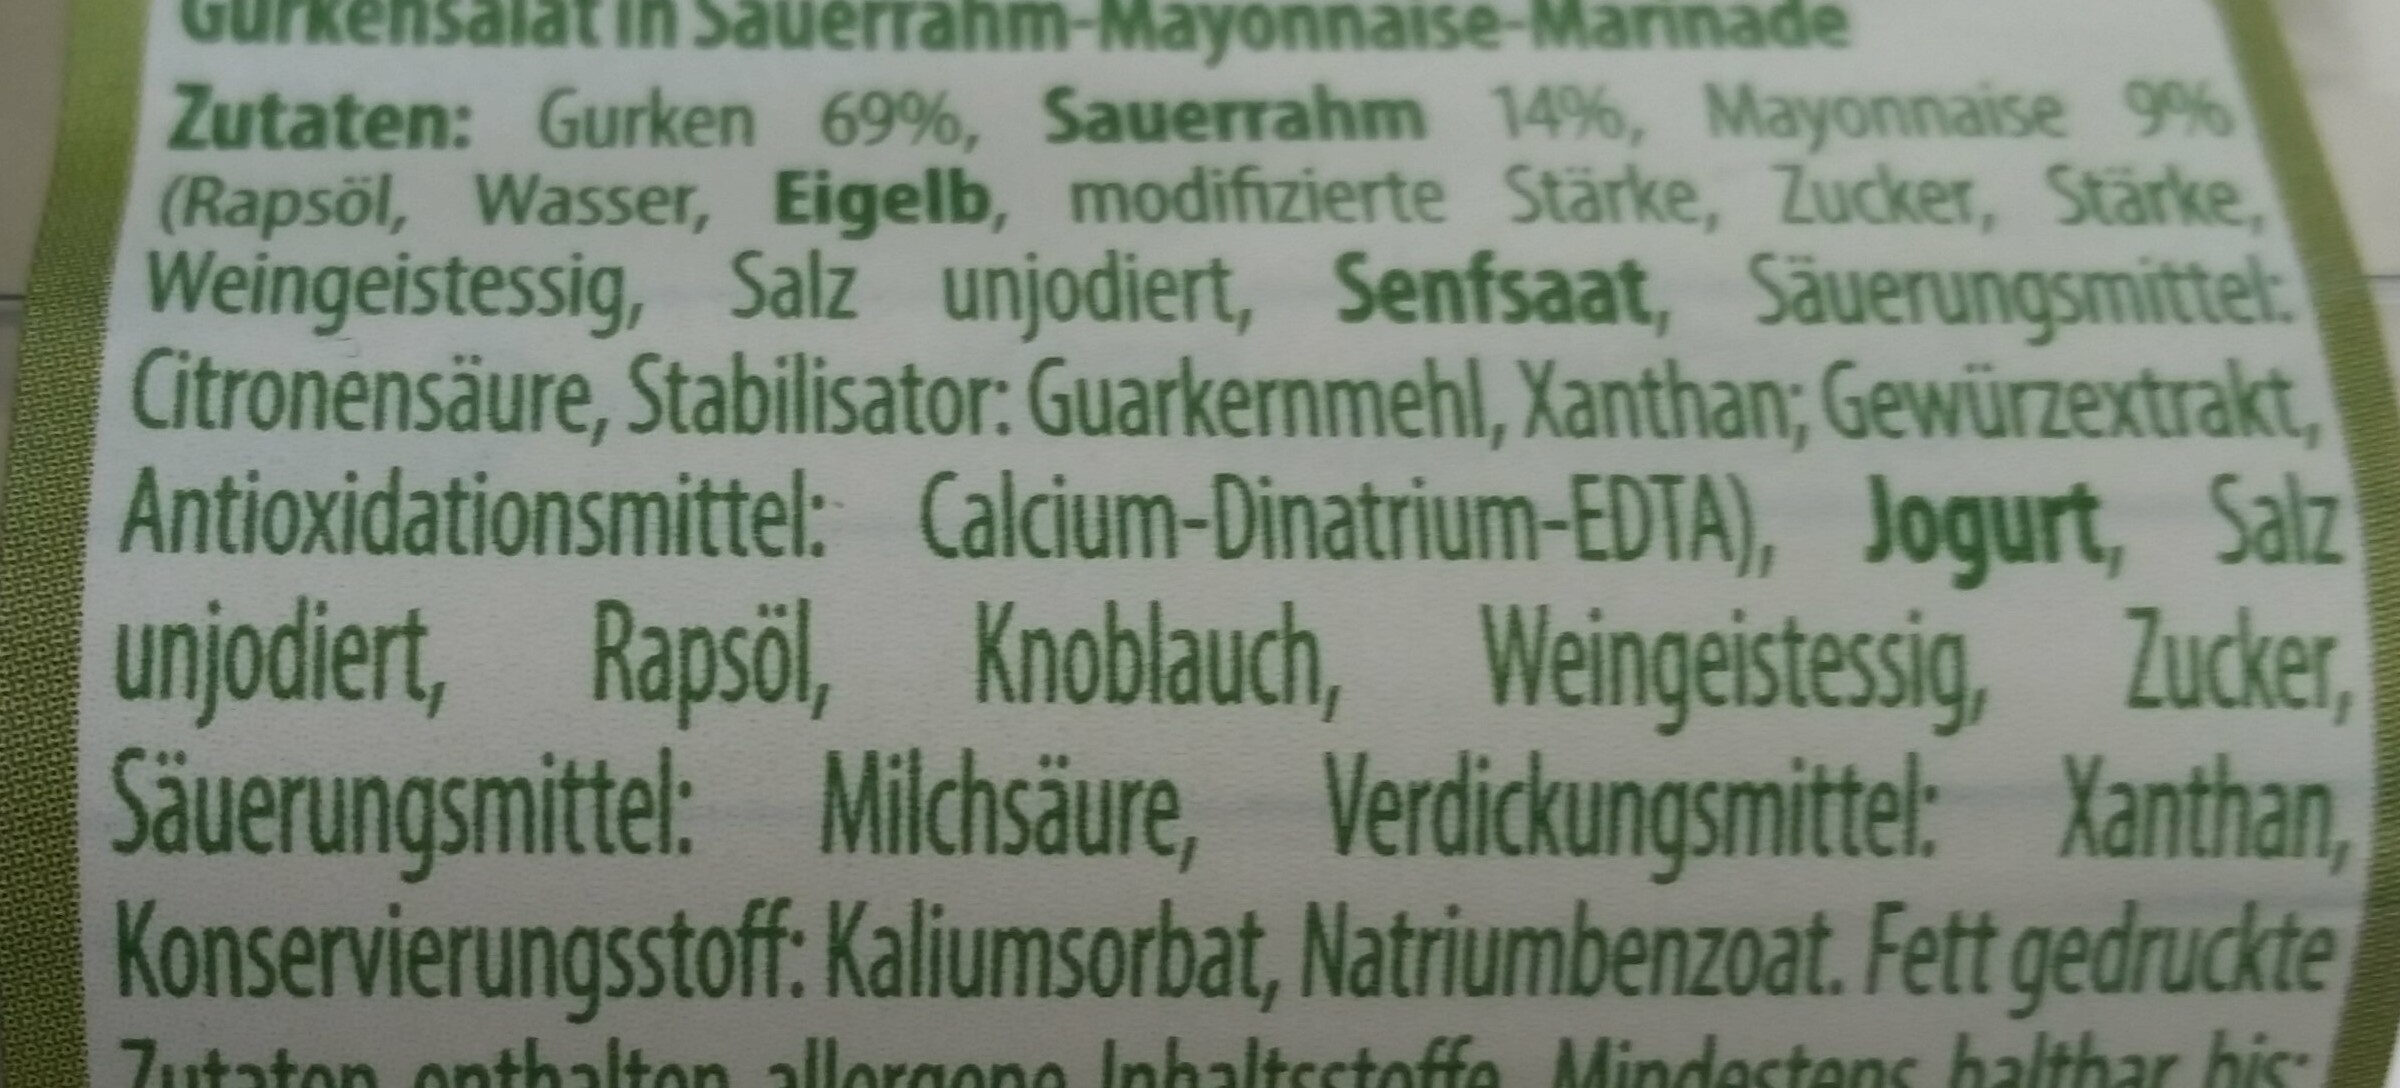 Gurkensalat im Sauerrahm-Dressing - Ingredients